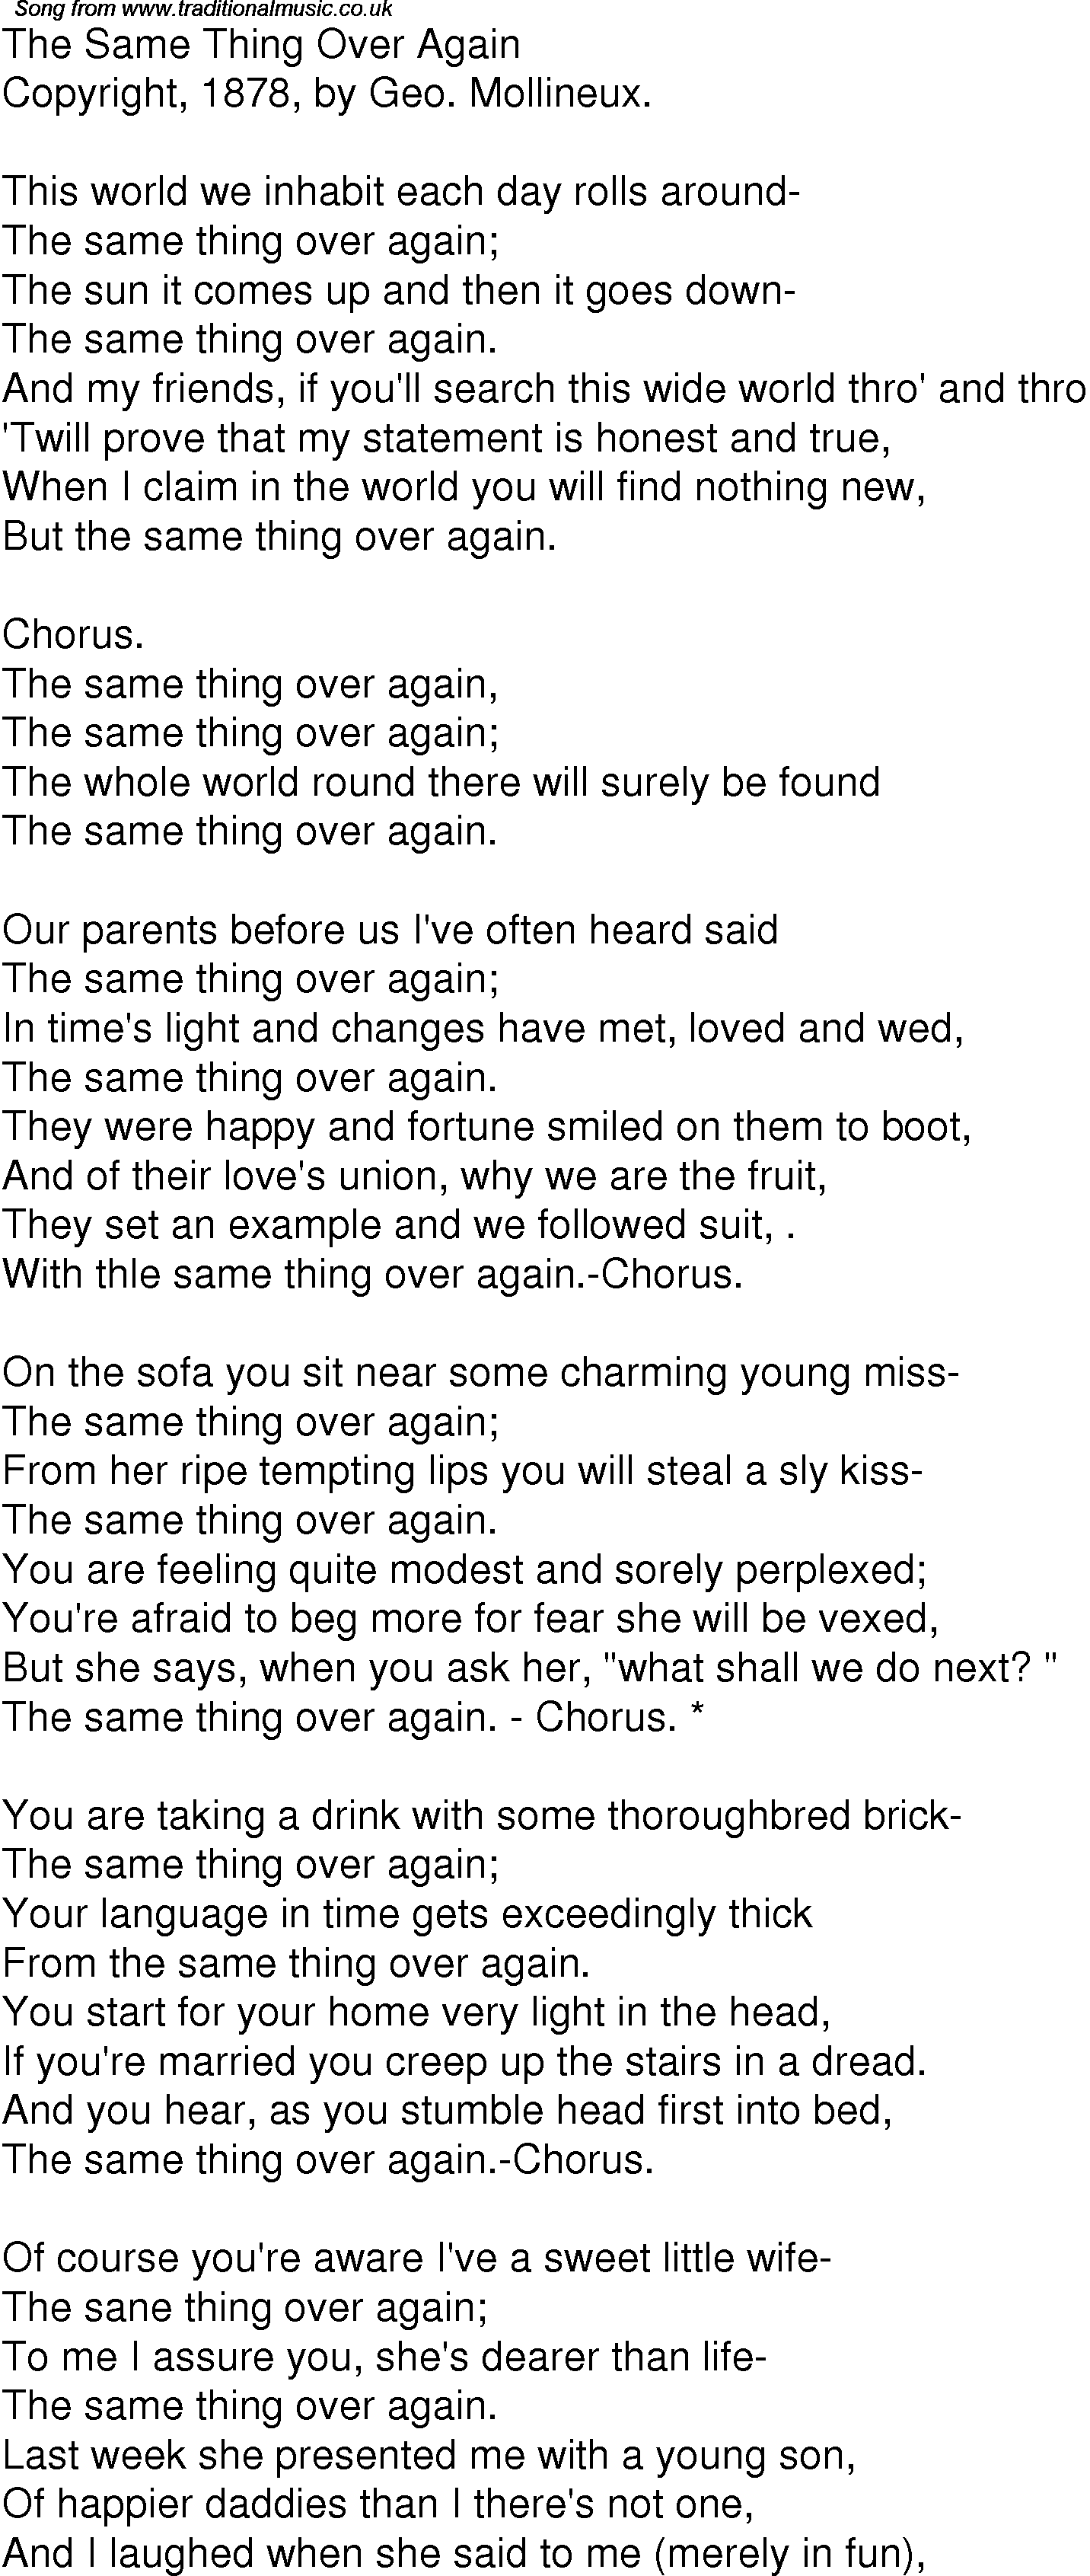 Old Time Song Lyrics For 01 The Same Thing Over Again